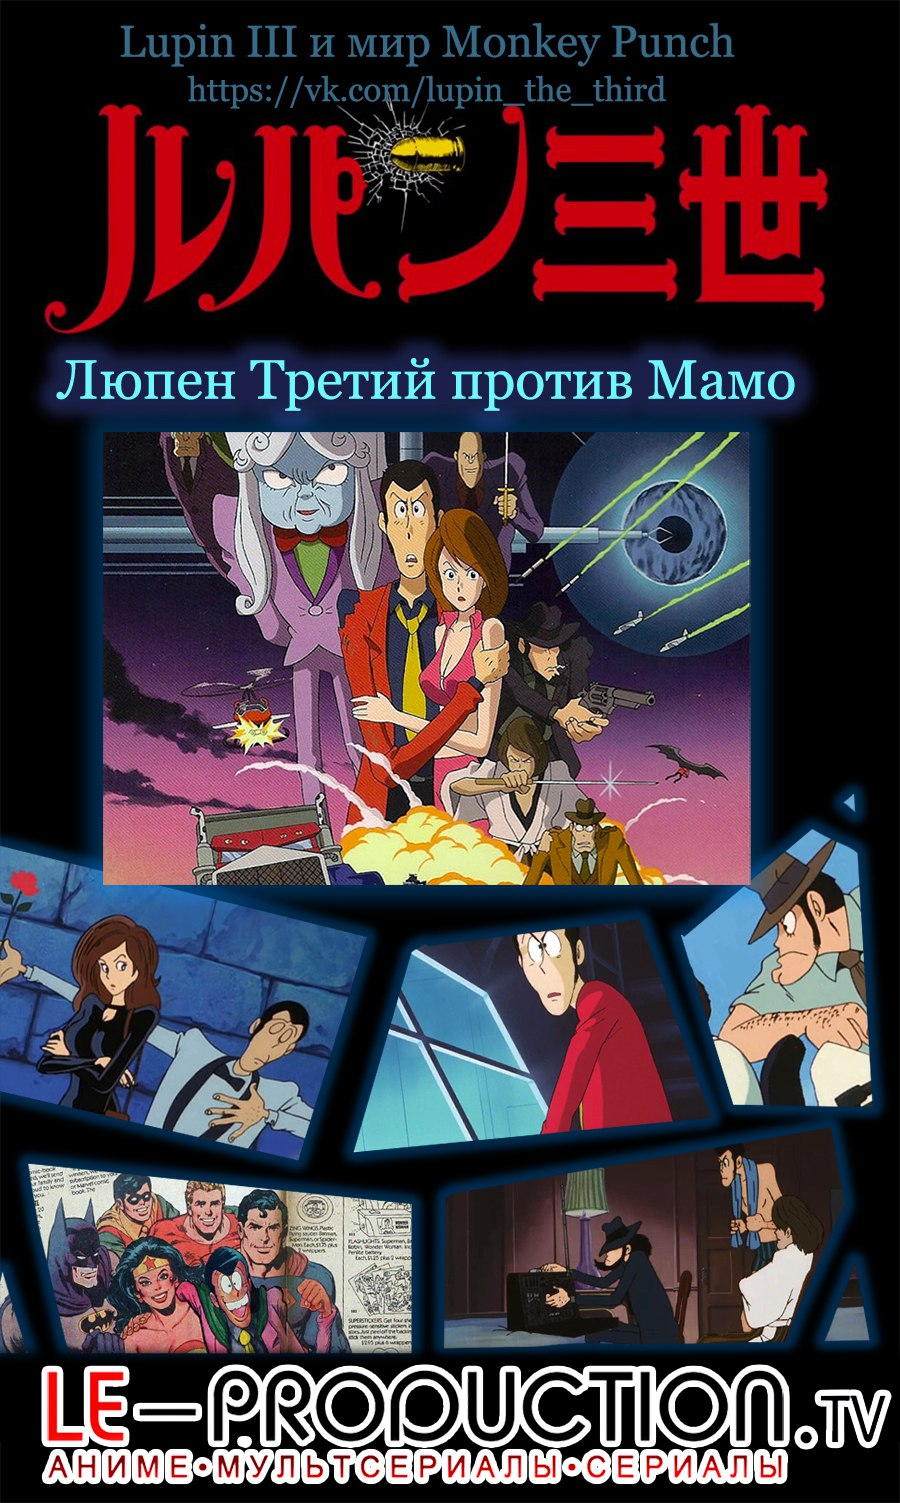 Люпен III: Тайна Мамо (фильм первый) / Lupin III: The Secret of Mamo / Lupin III: Lupin Vs the Clone / ルパン三世 ルパンVS複製人間(クローン)(ビデオ題)